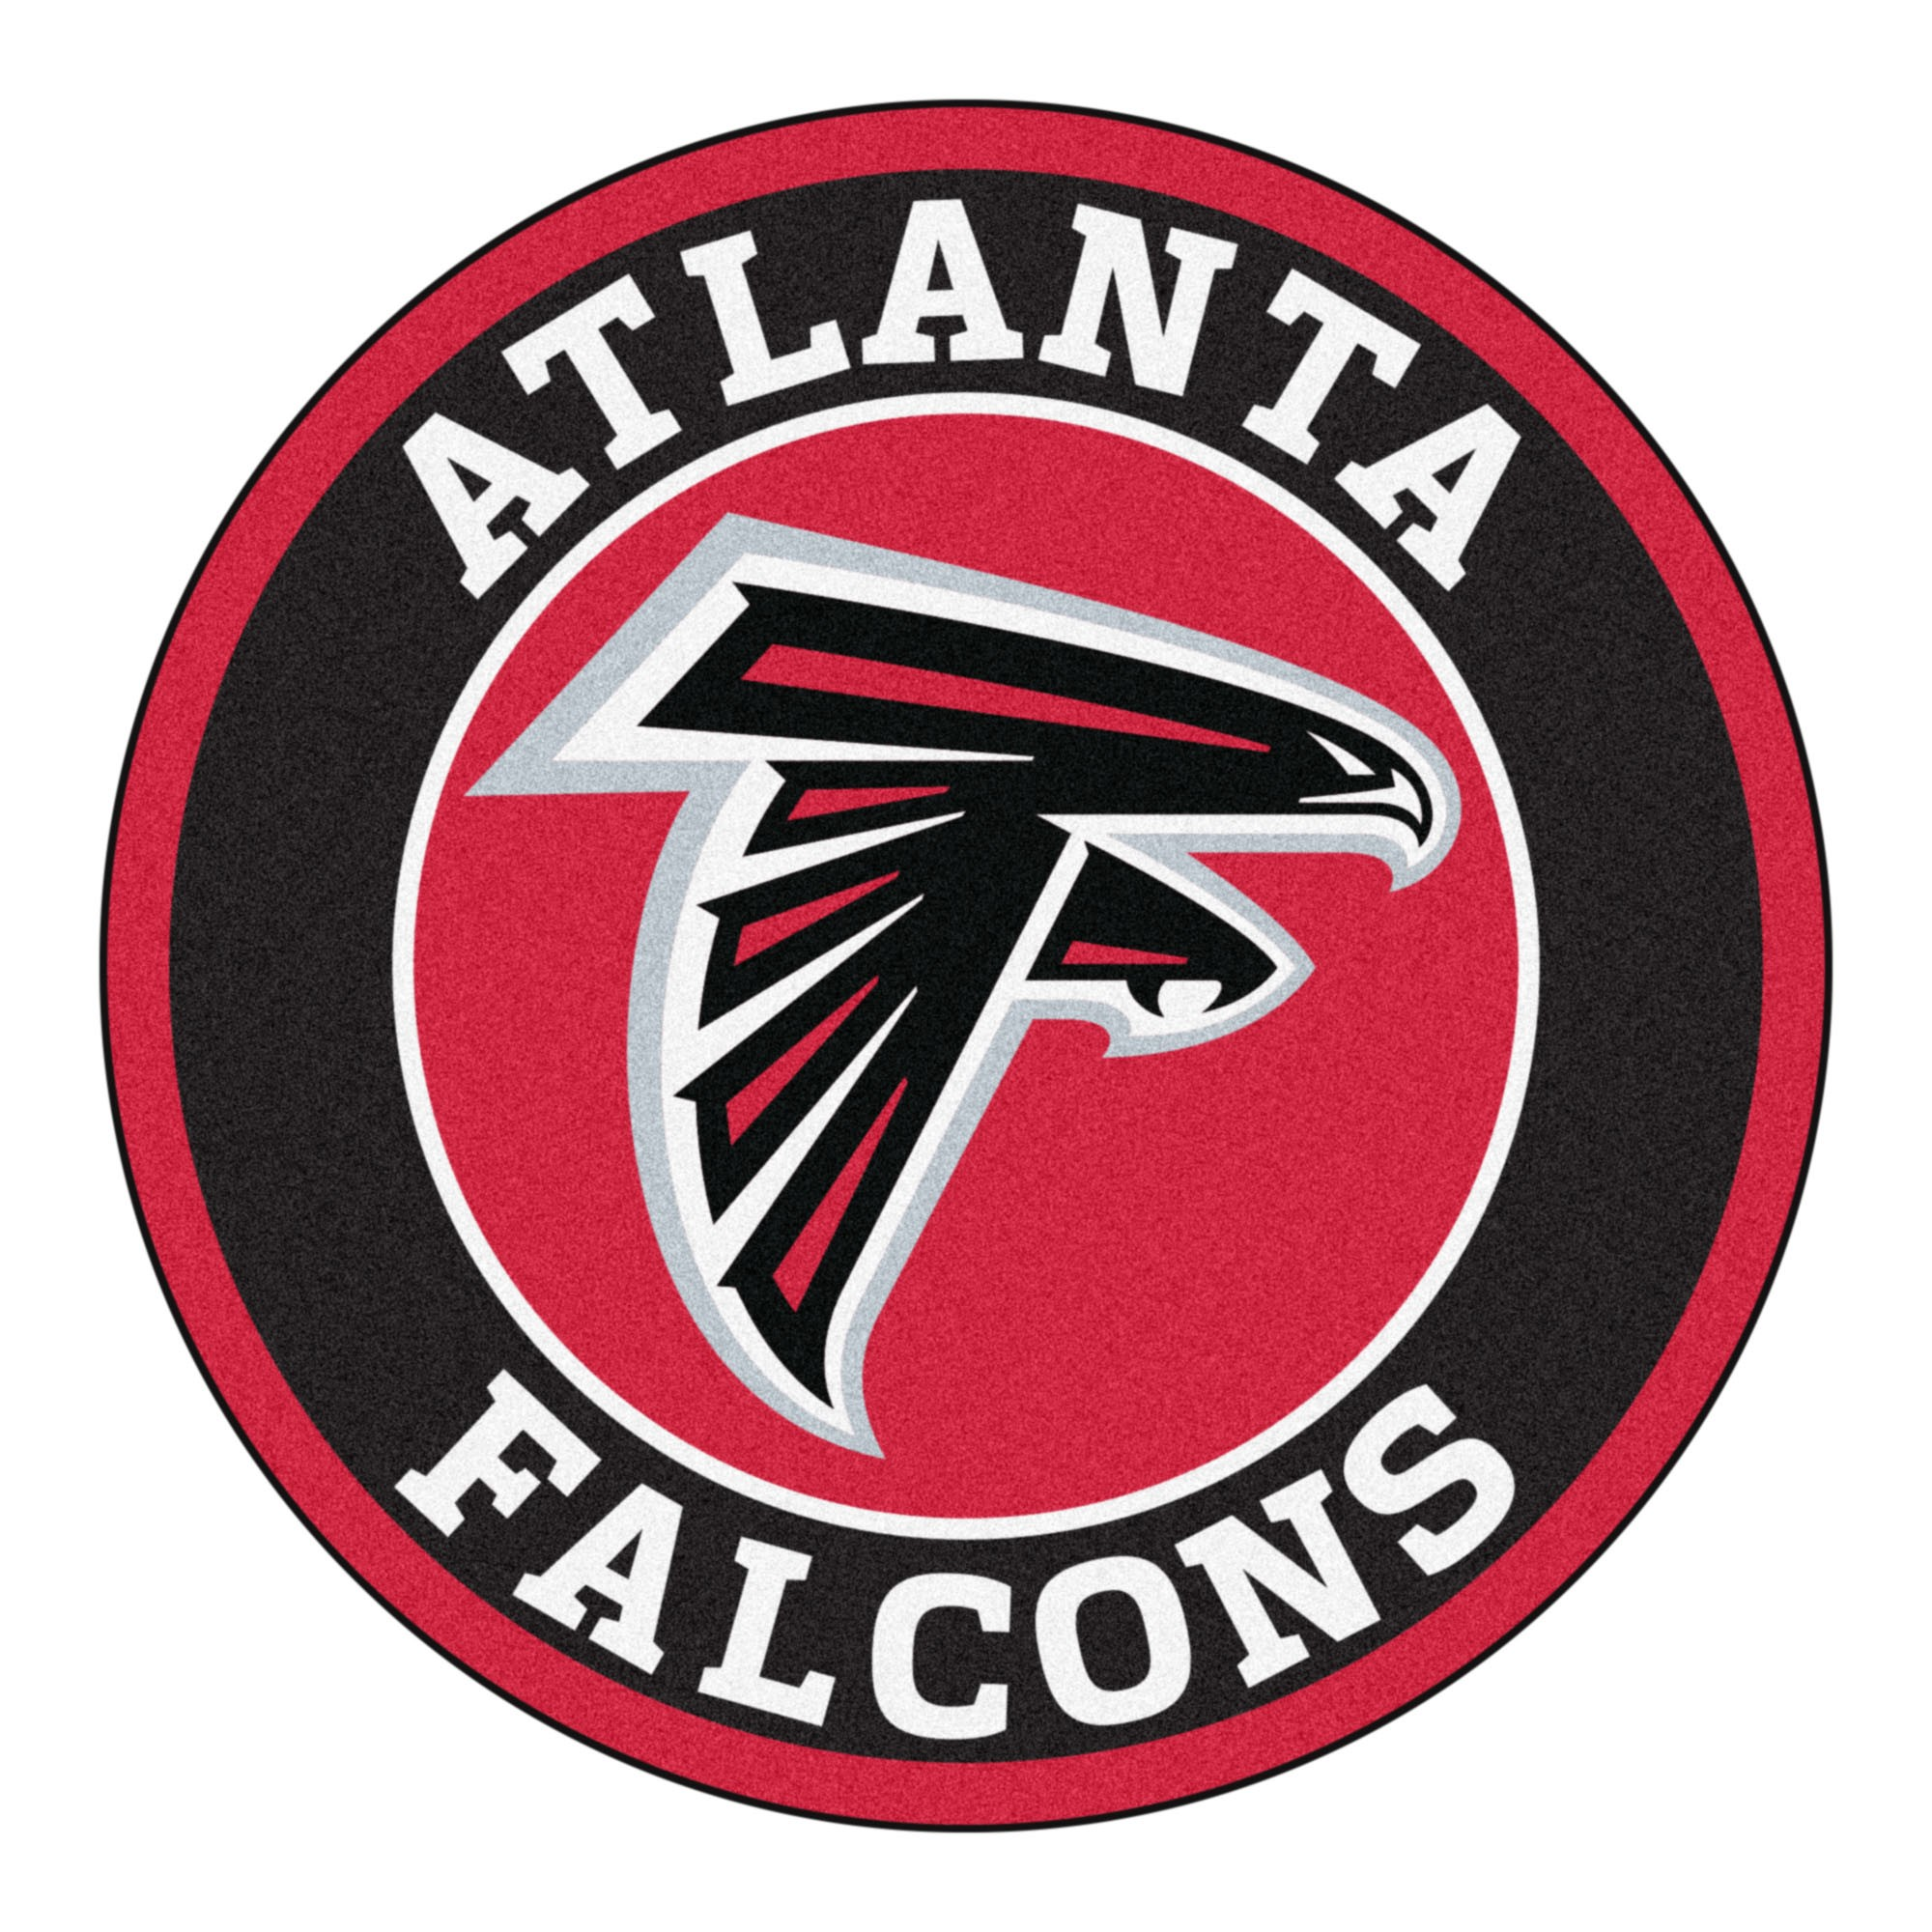 Comprehensive and uptodate Atlanta Falcons news scores schedule stats and roster